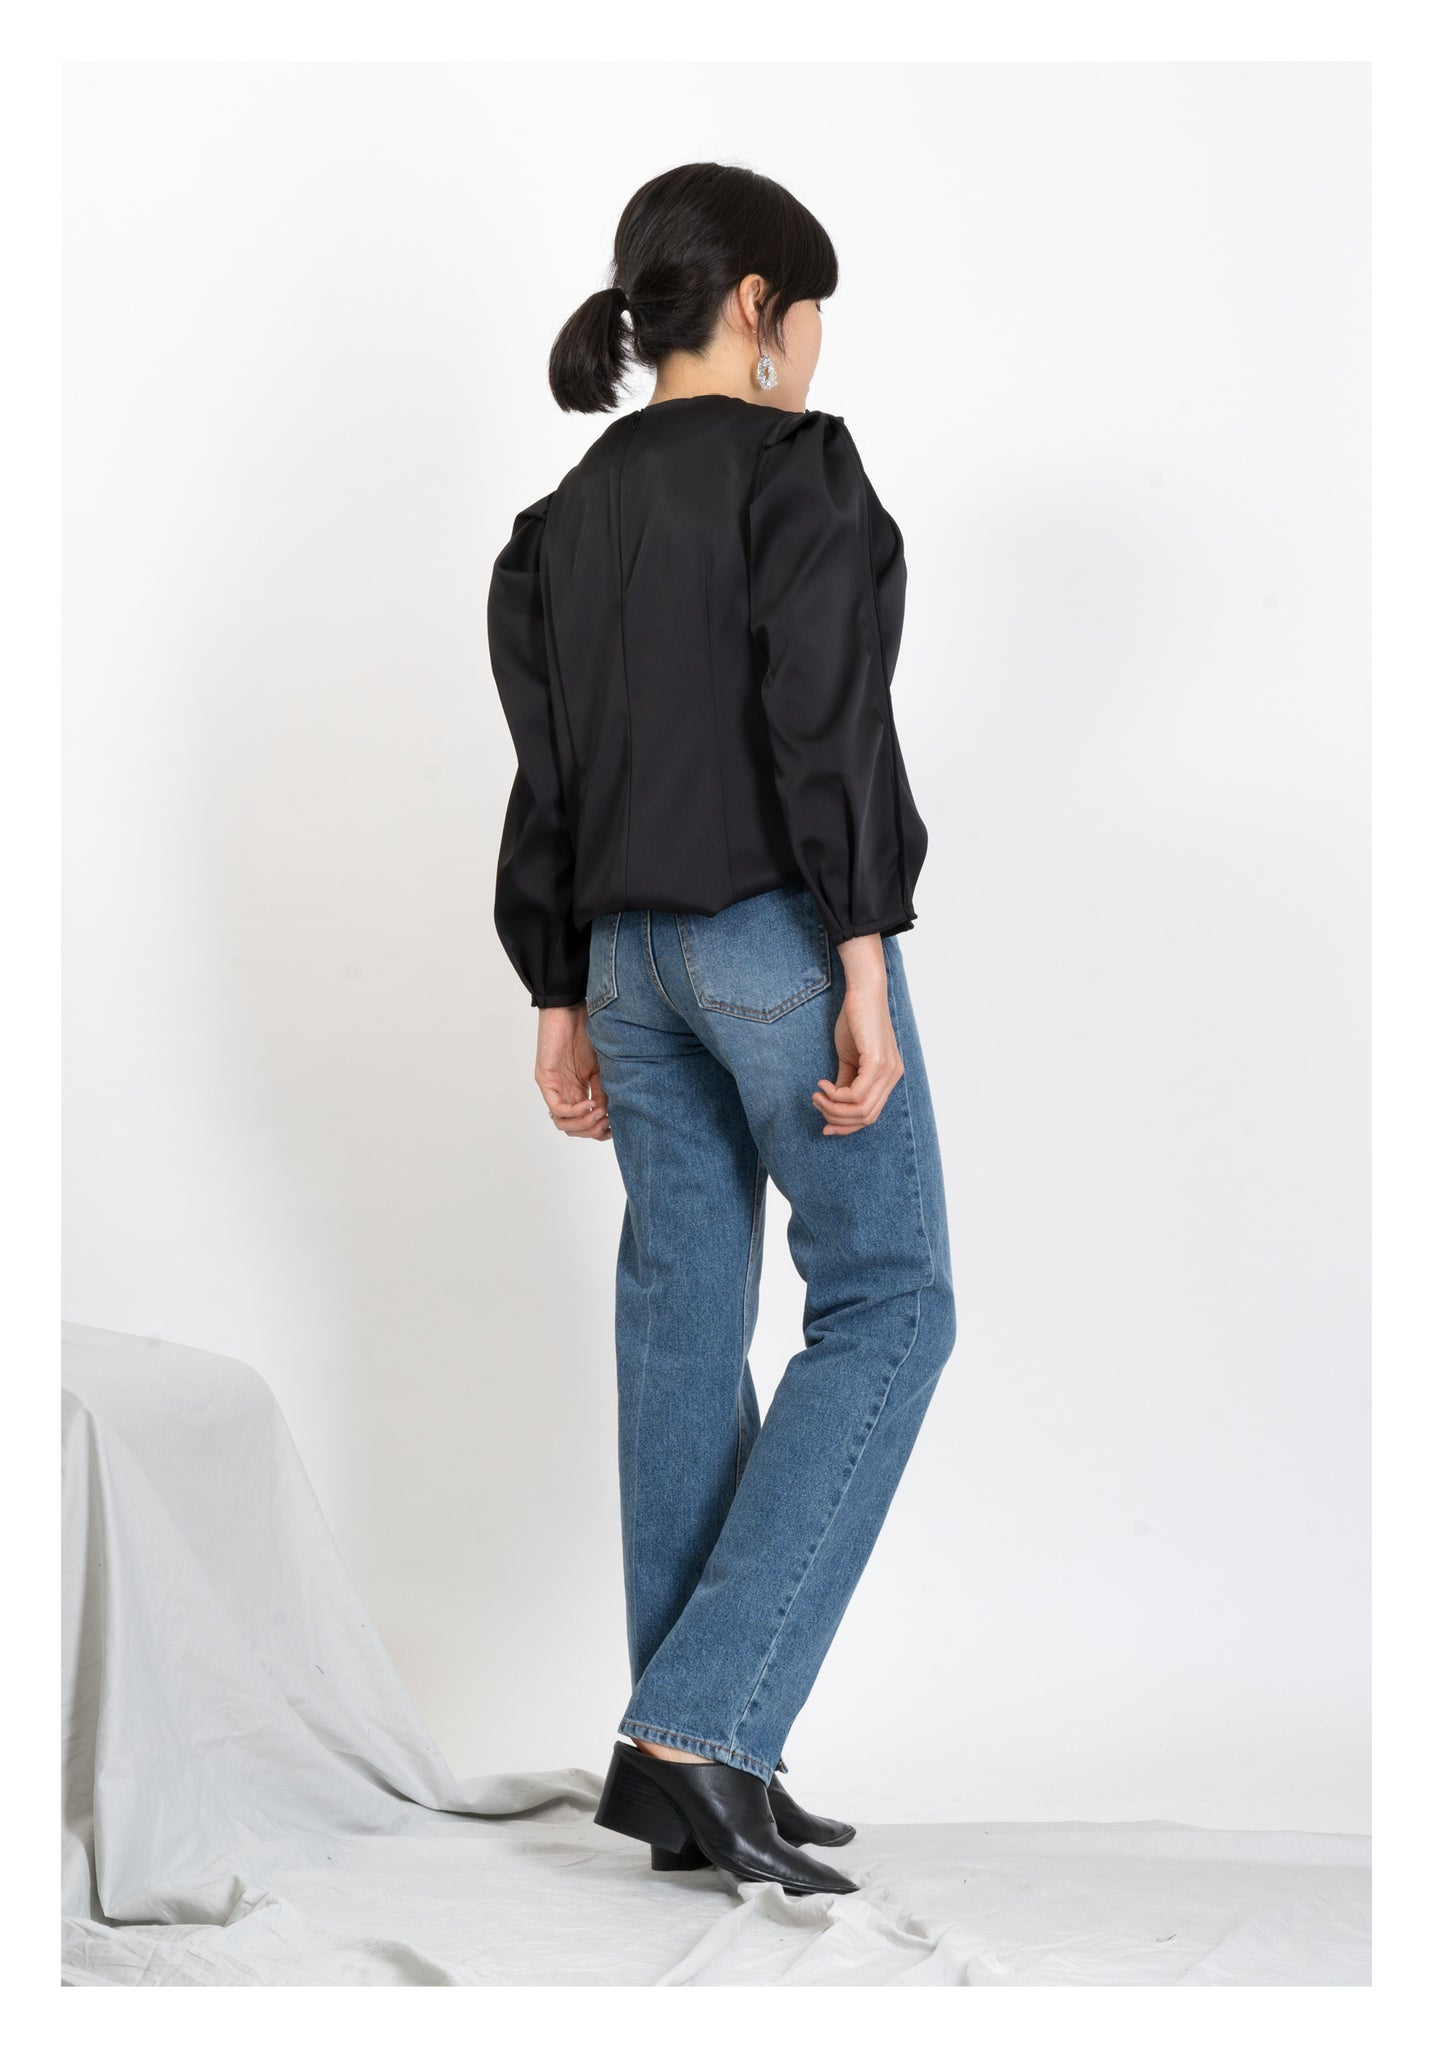 Inward Slit Washed Jeans - whoami